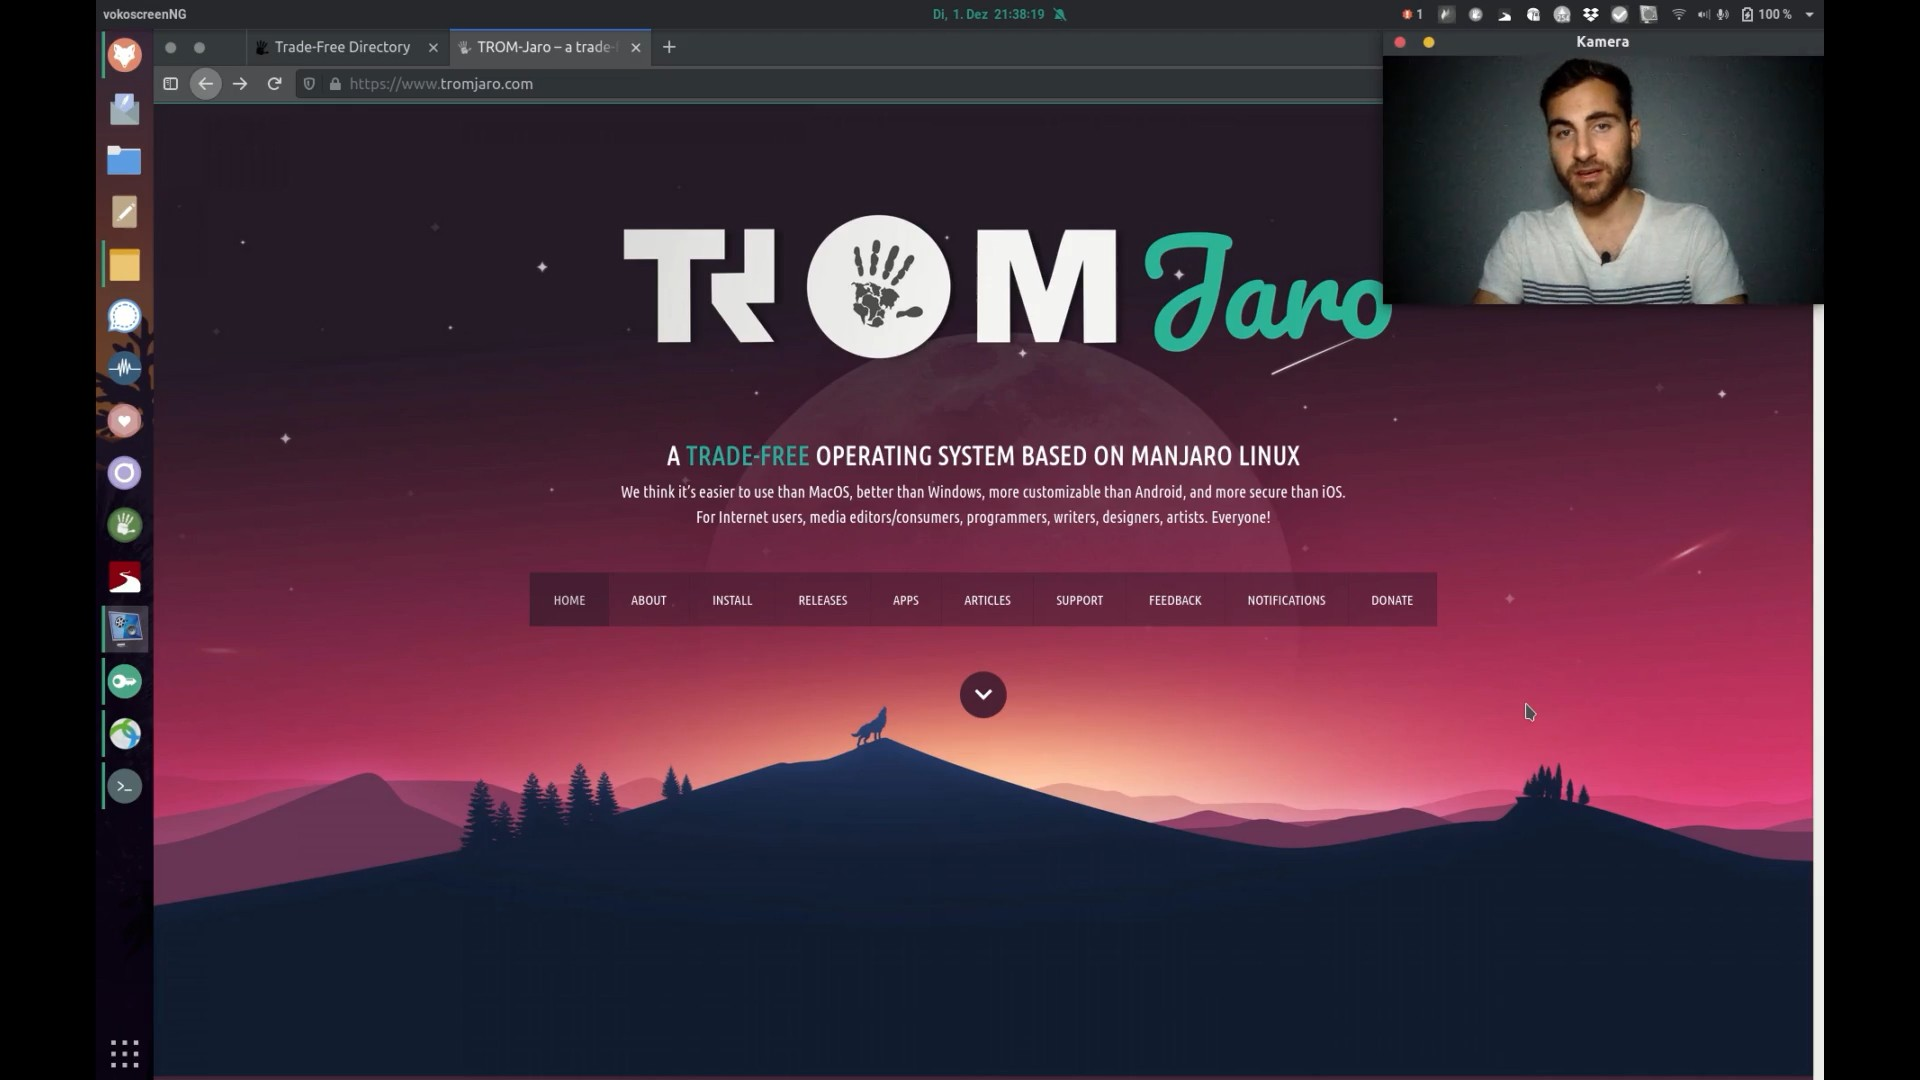 16. TROM-Jaro - A Trade-Free Operating System